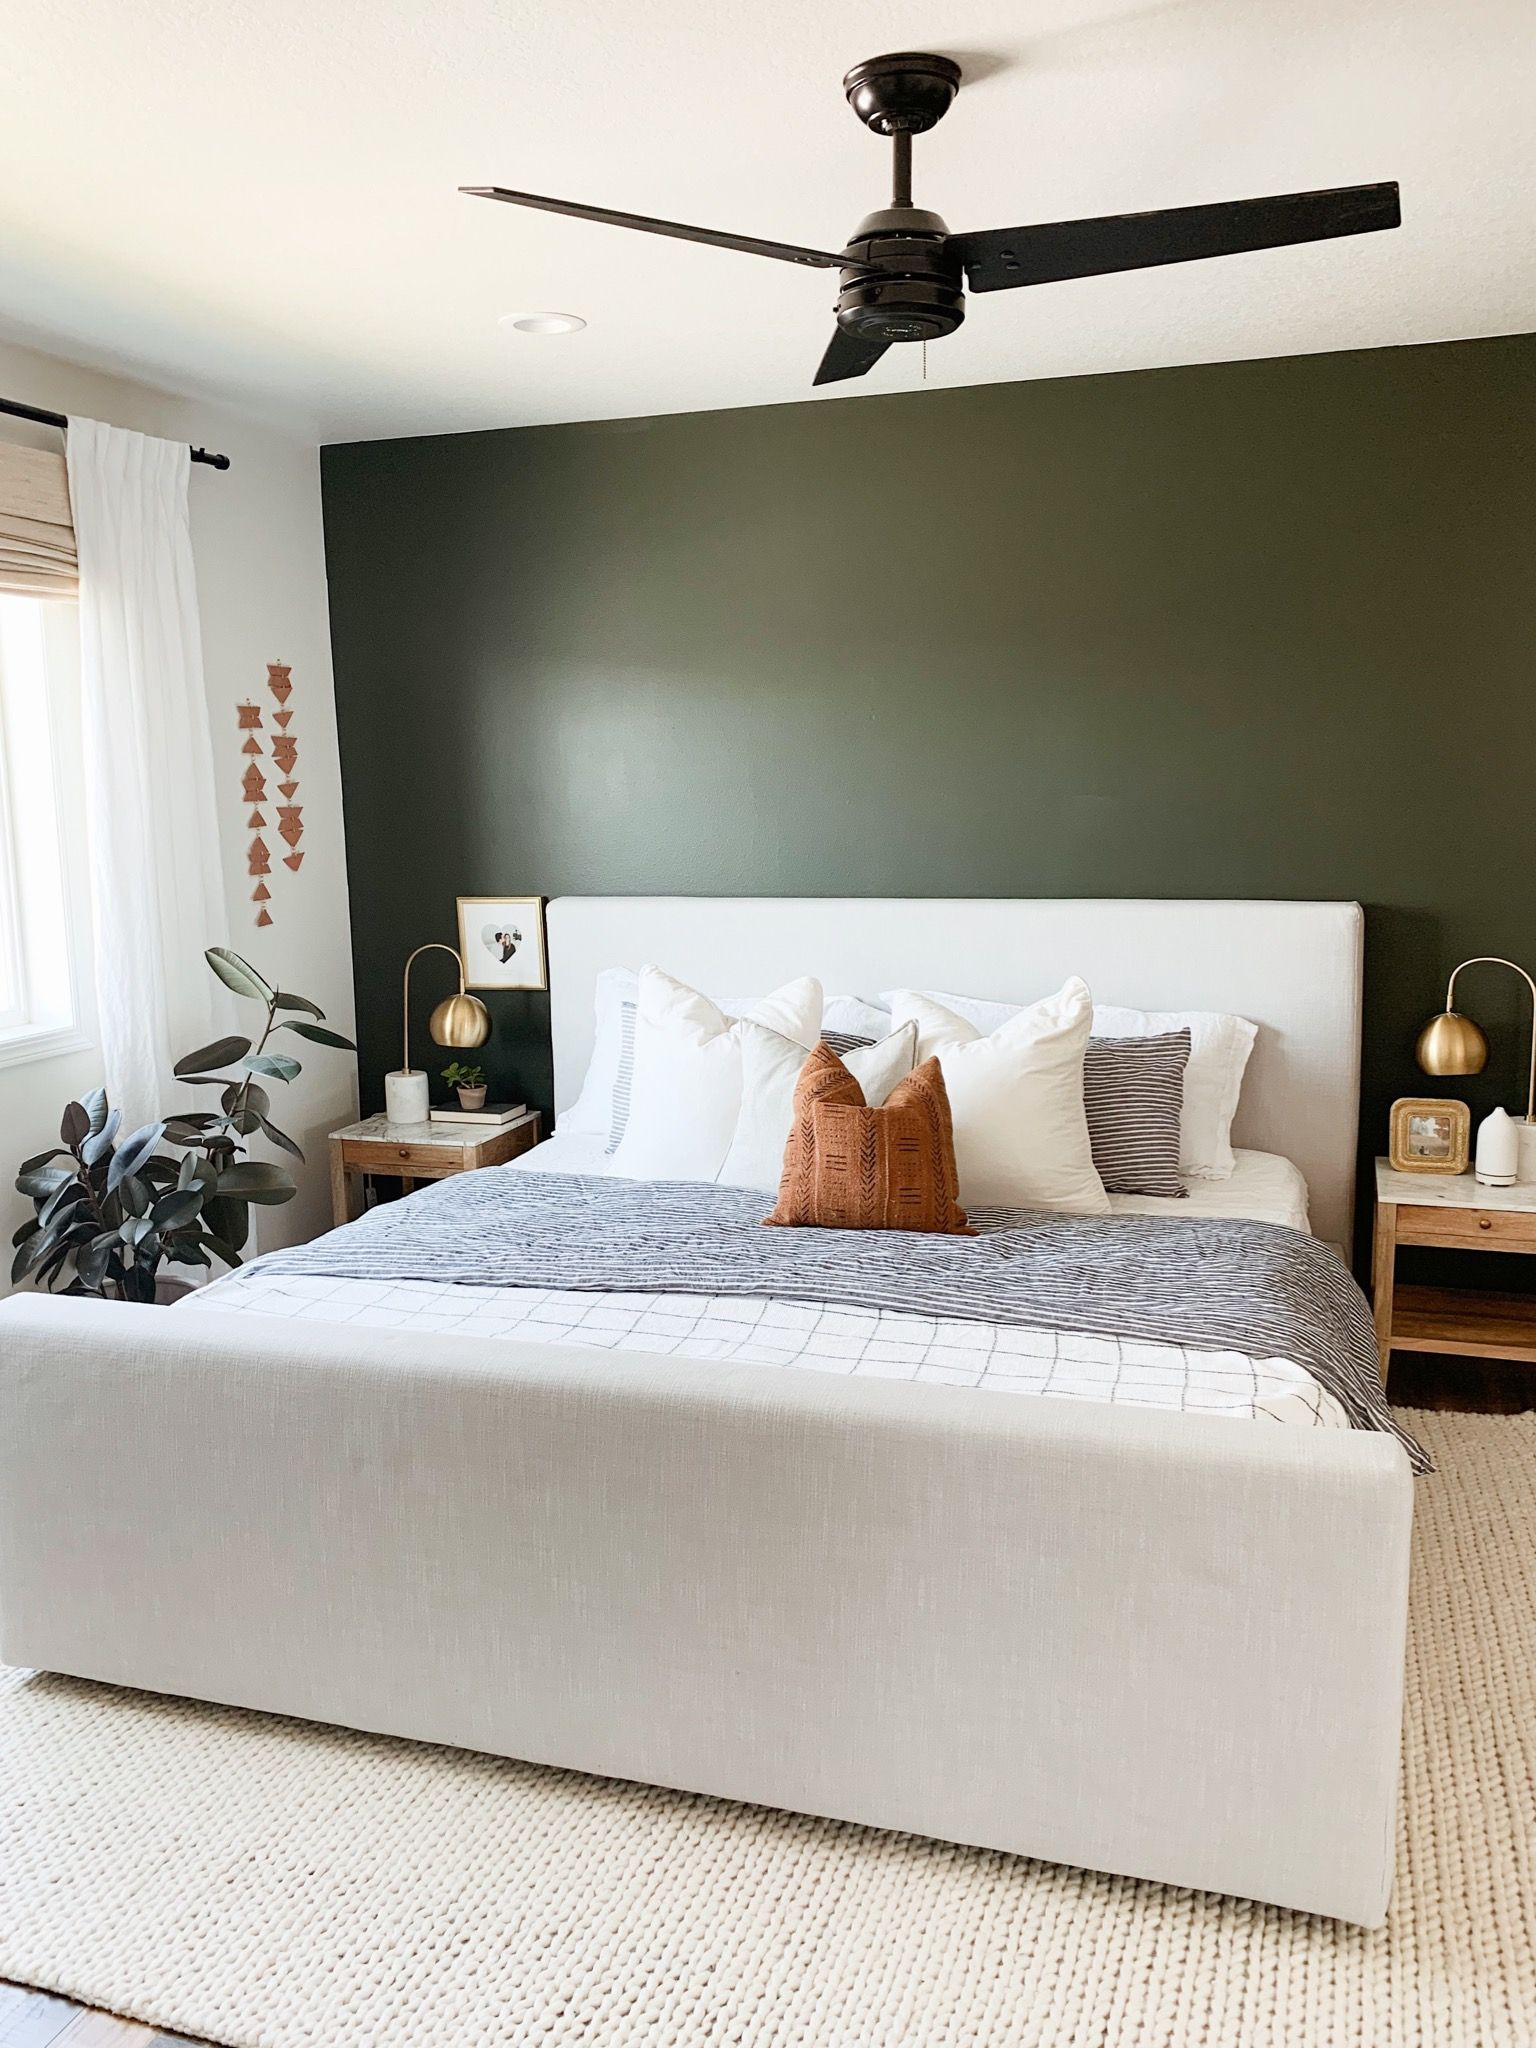 Cozy bedroom inspiration with a king size bed, olive green